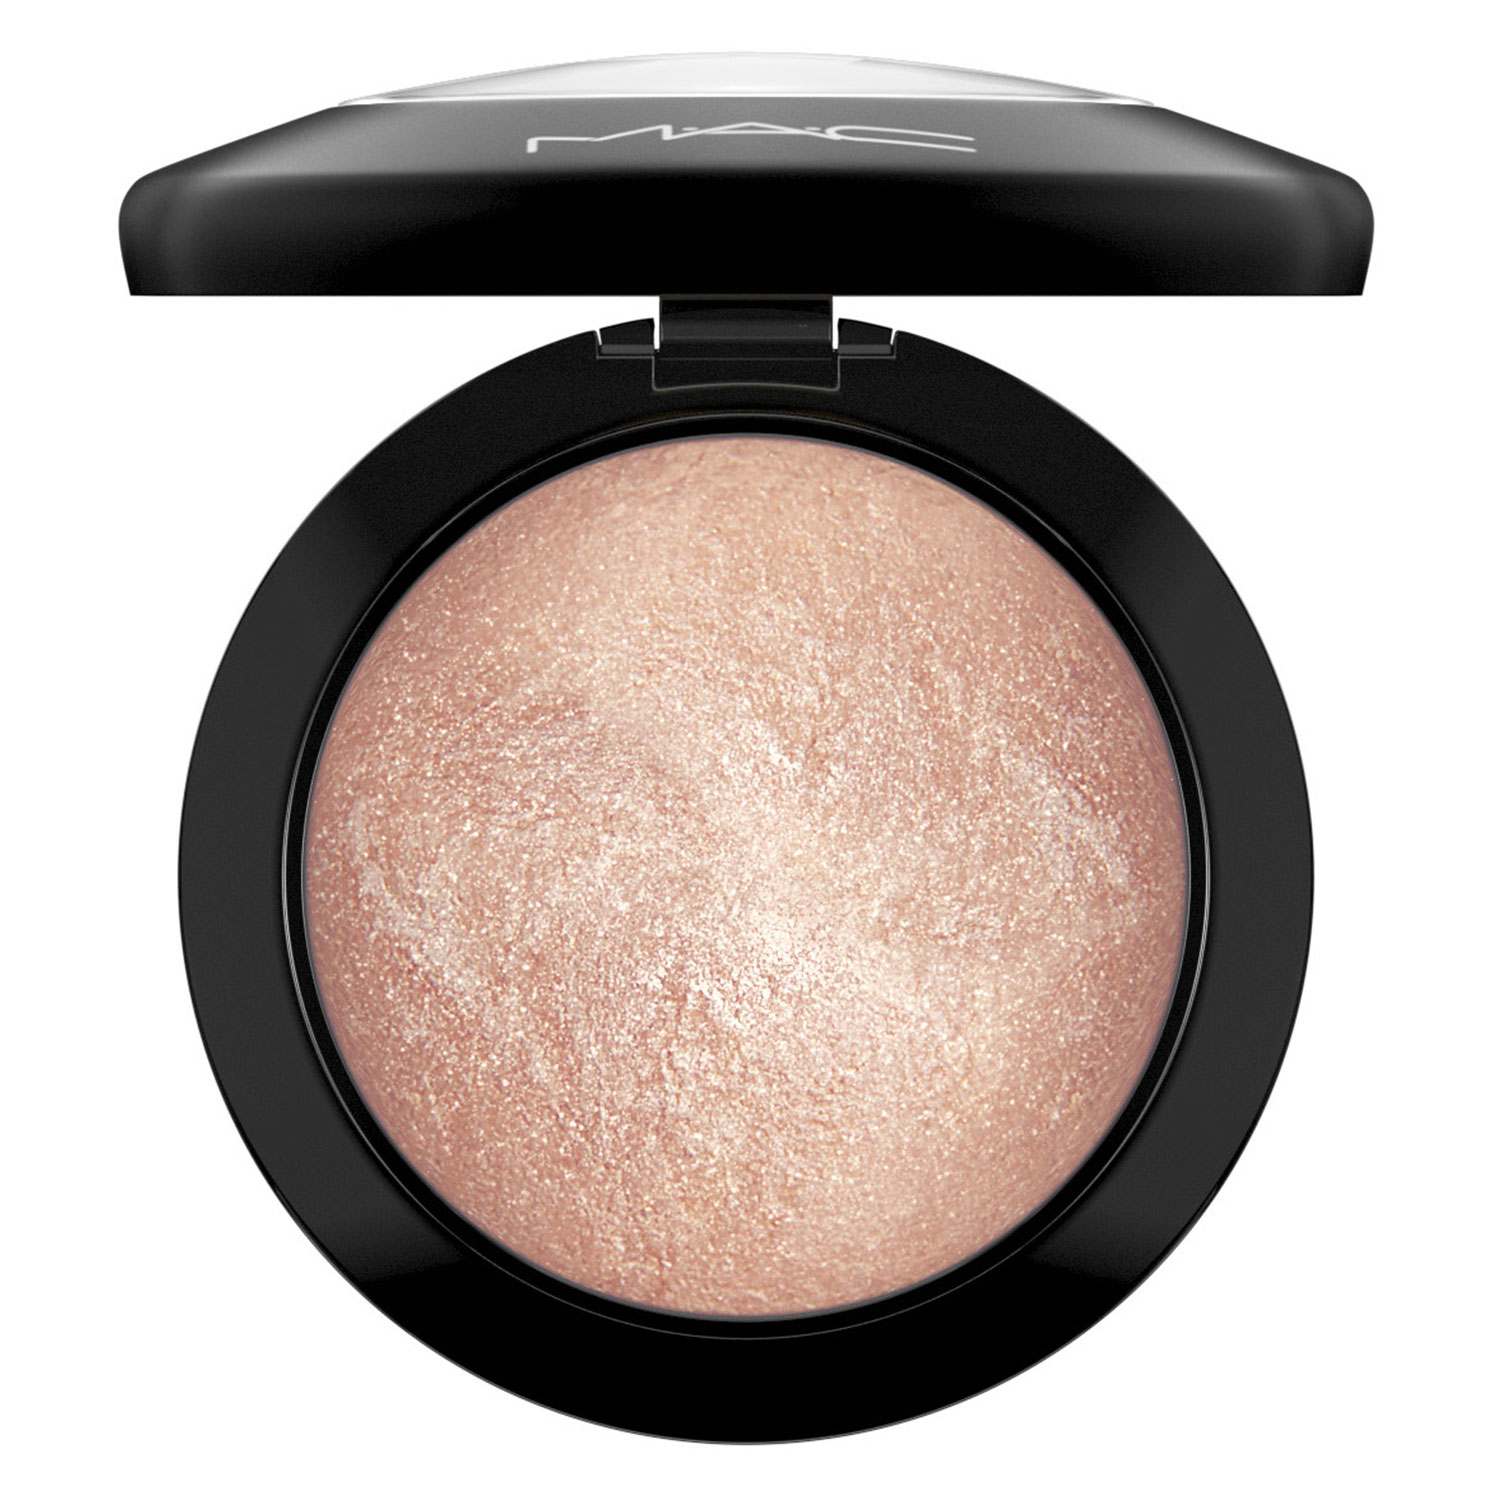 Mineralize - Skinfinish Soft and Gentle - 10g